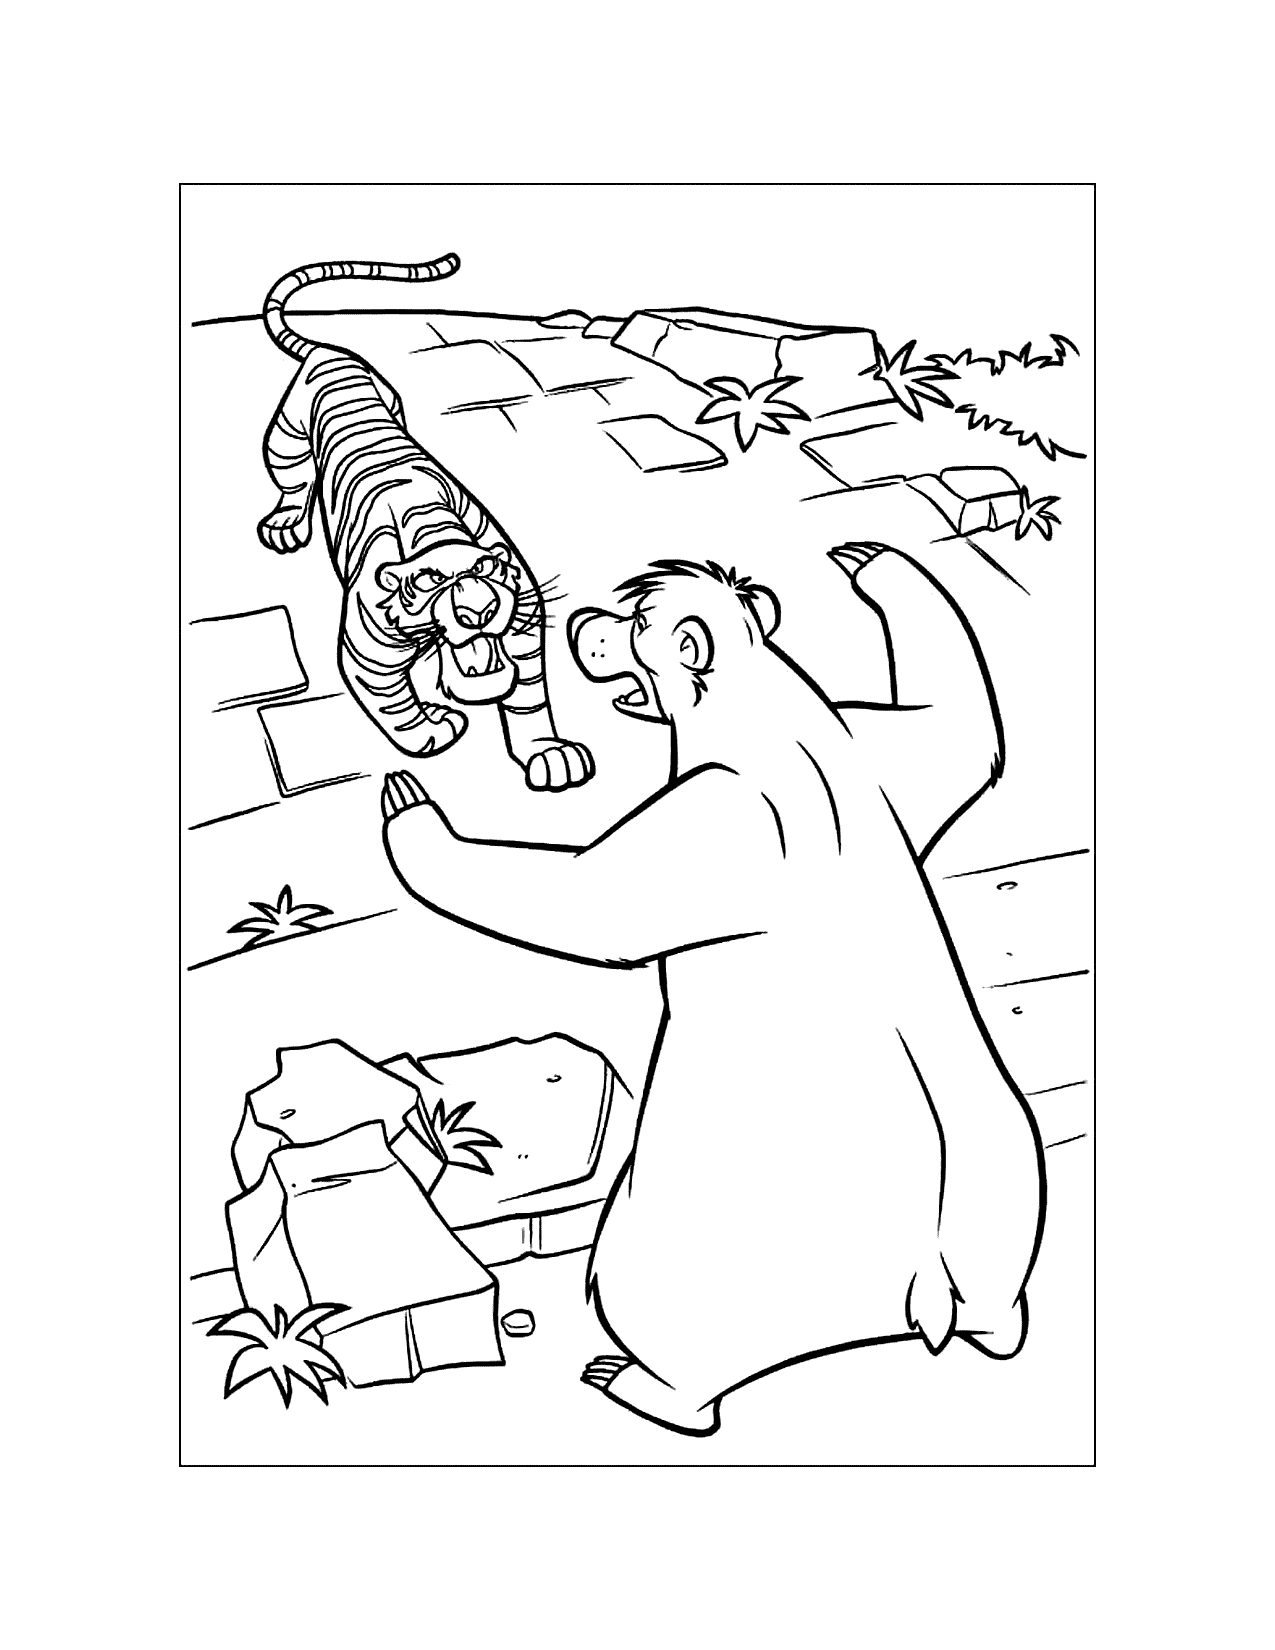 Shere Kahn And Baloo Fight Coloring Page